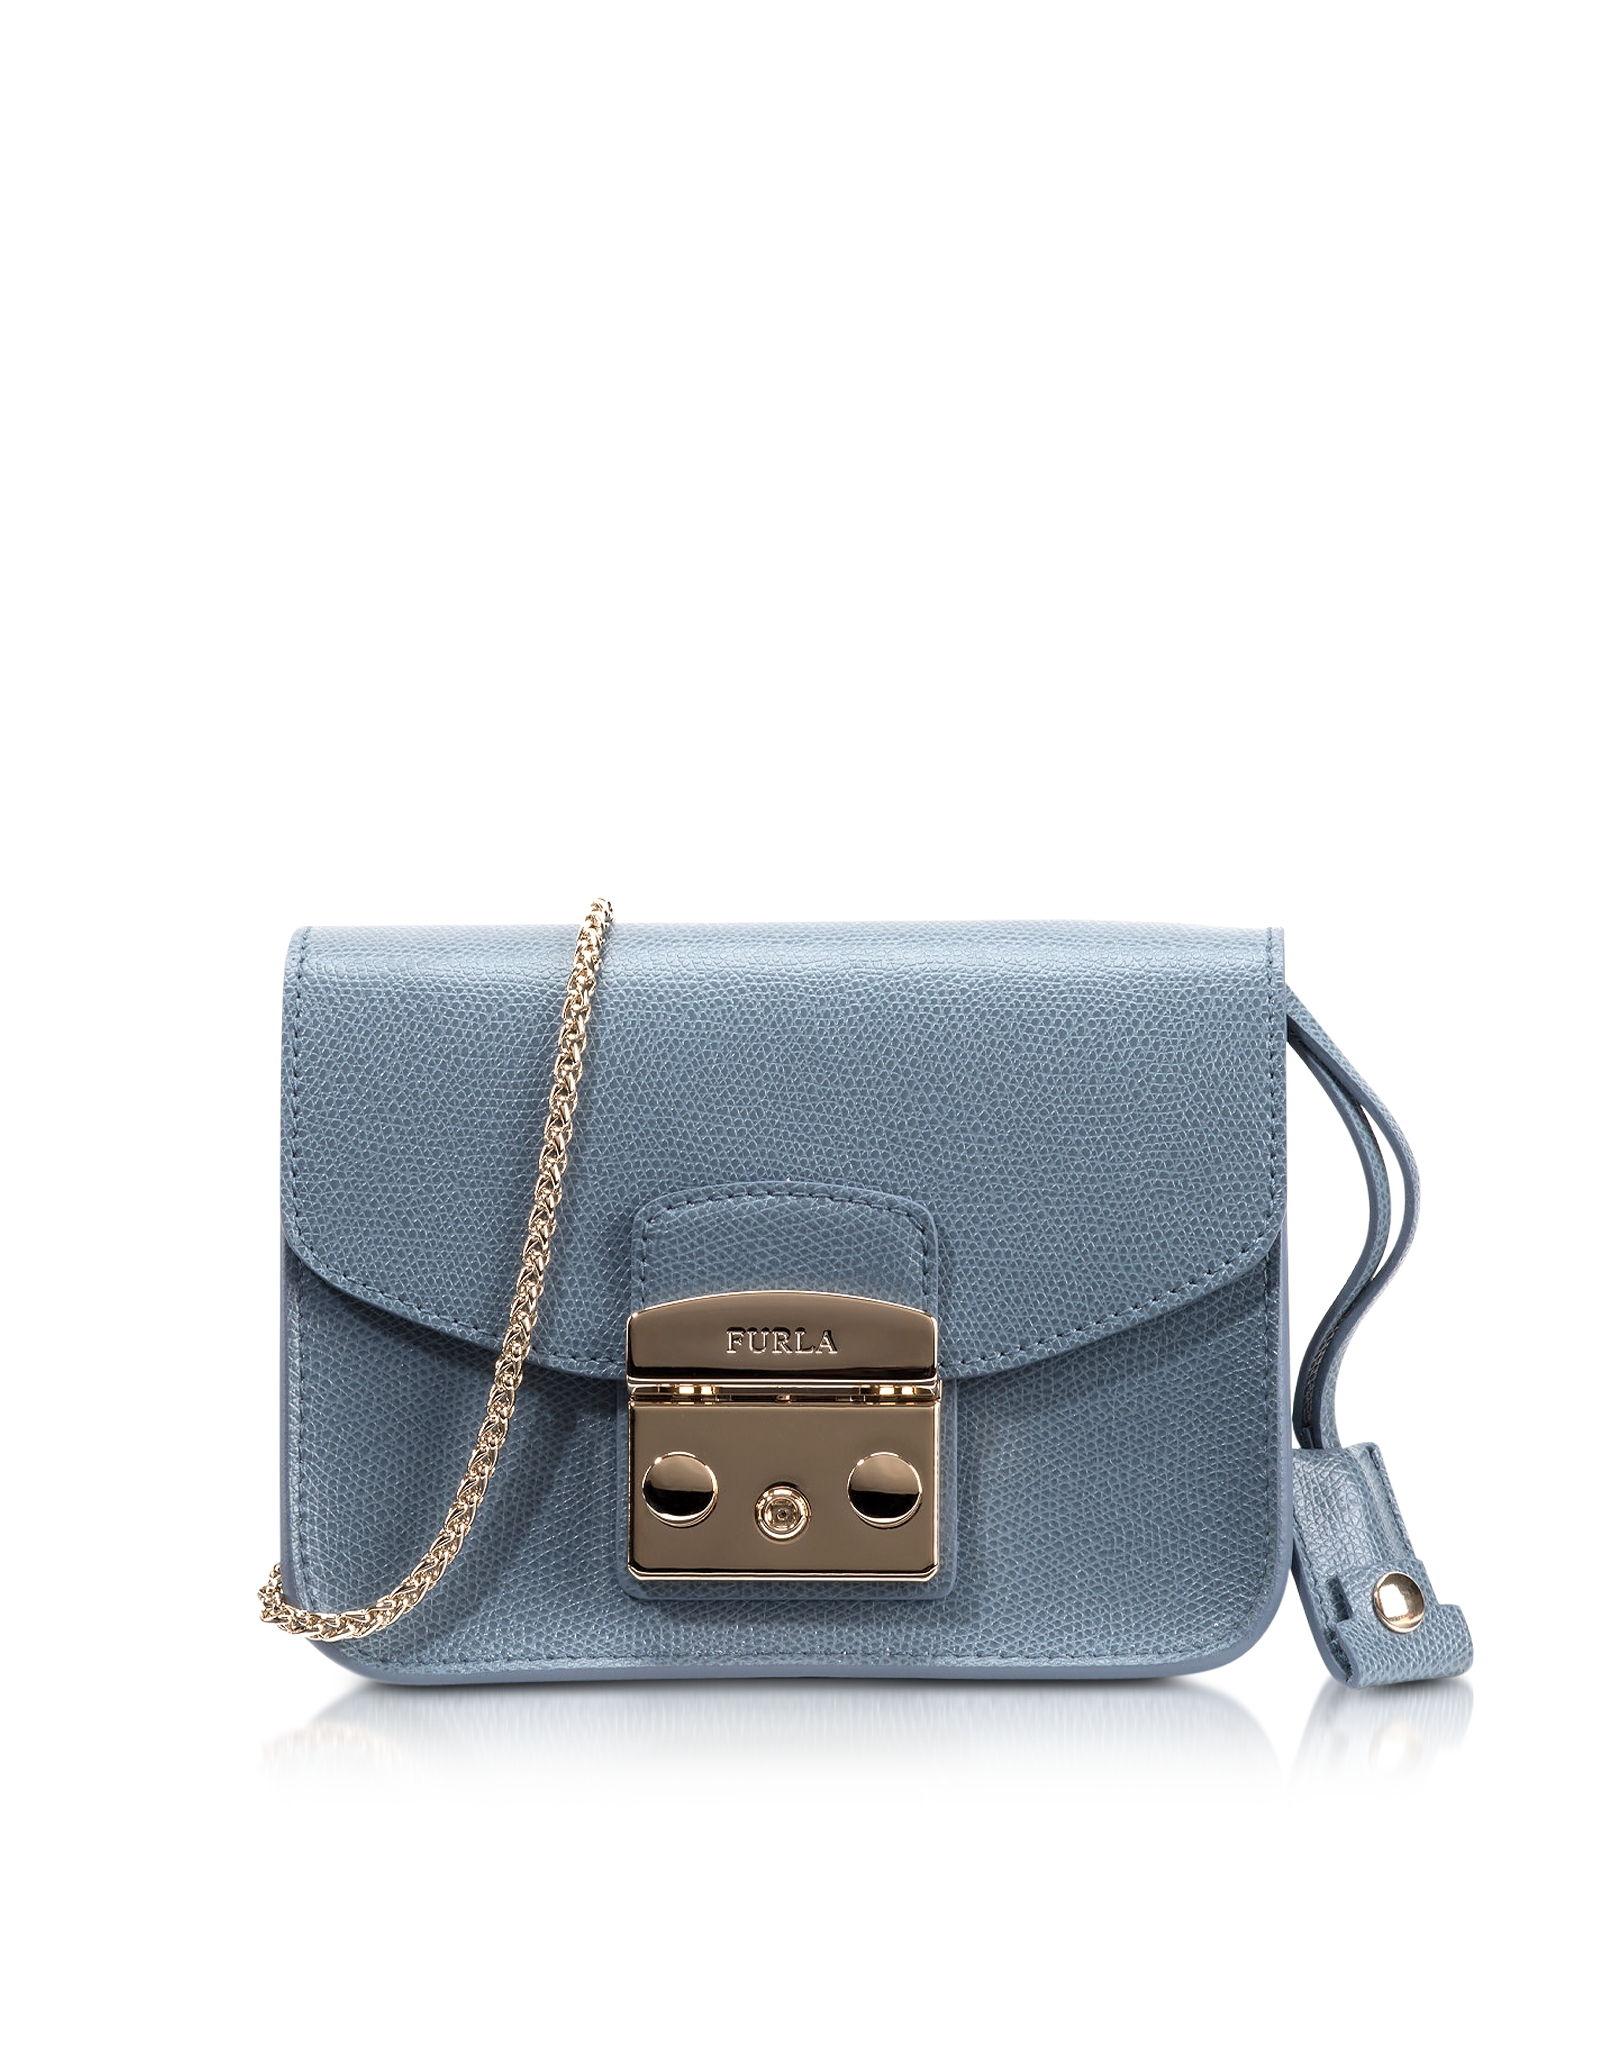 d7b0689bb86a Lyst - Furla Metropolis Dolomia Leather Mini Crossbody Bag in Blue